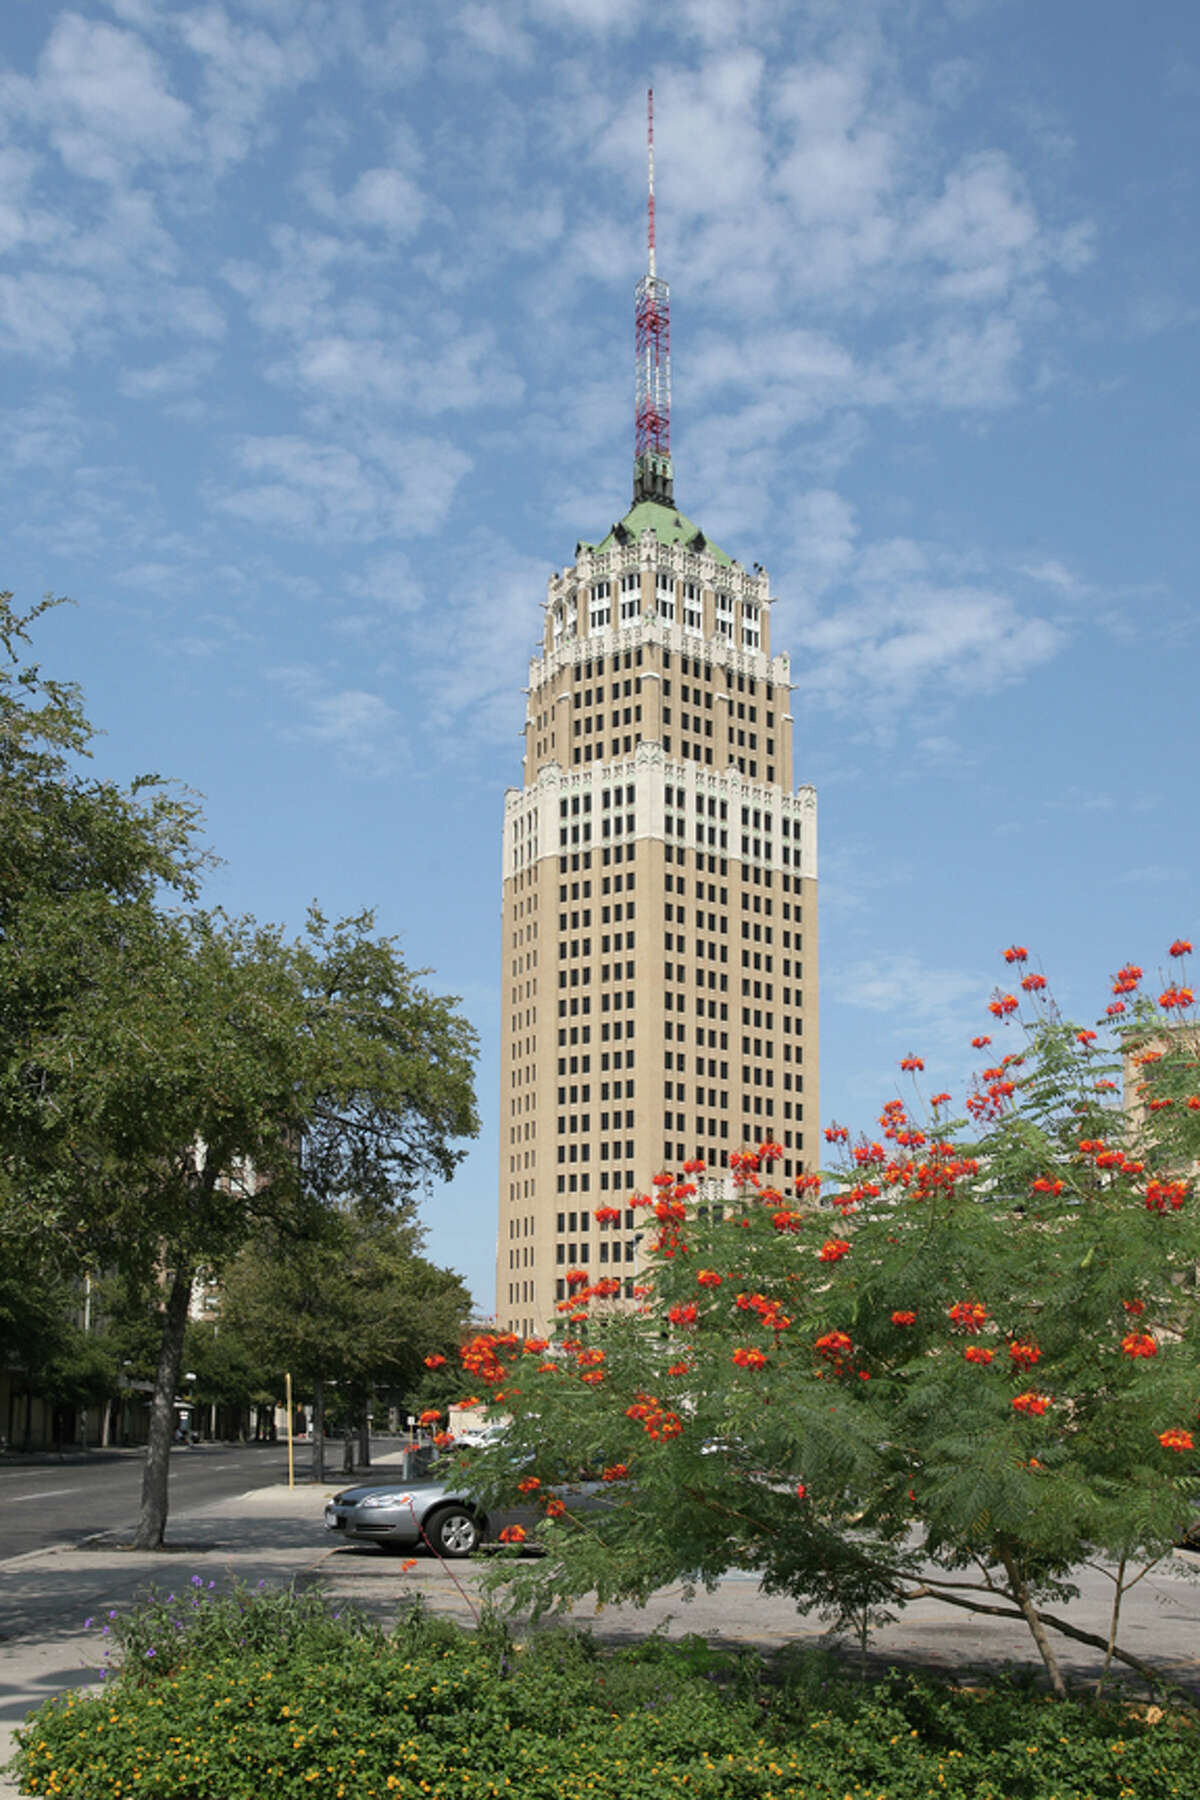 Originally called the Smith-Young Tower, the Tower Life Building was designed by Atlee B. Ayres and Robert M. Ayres.